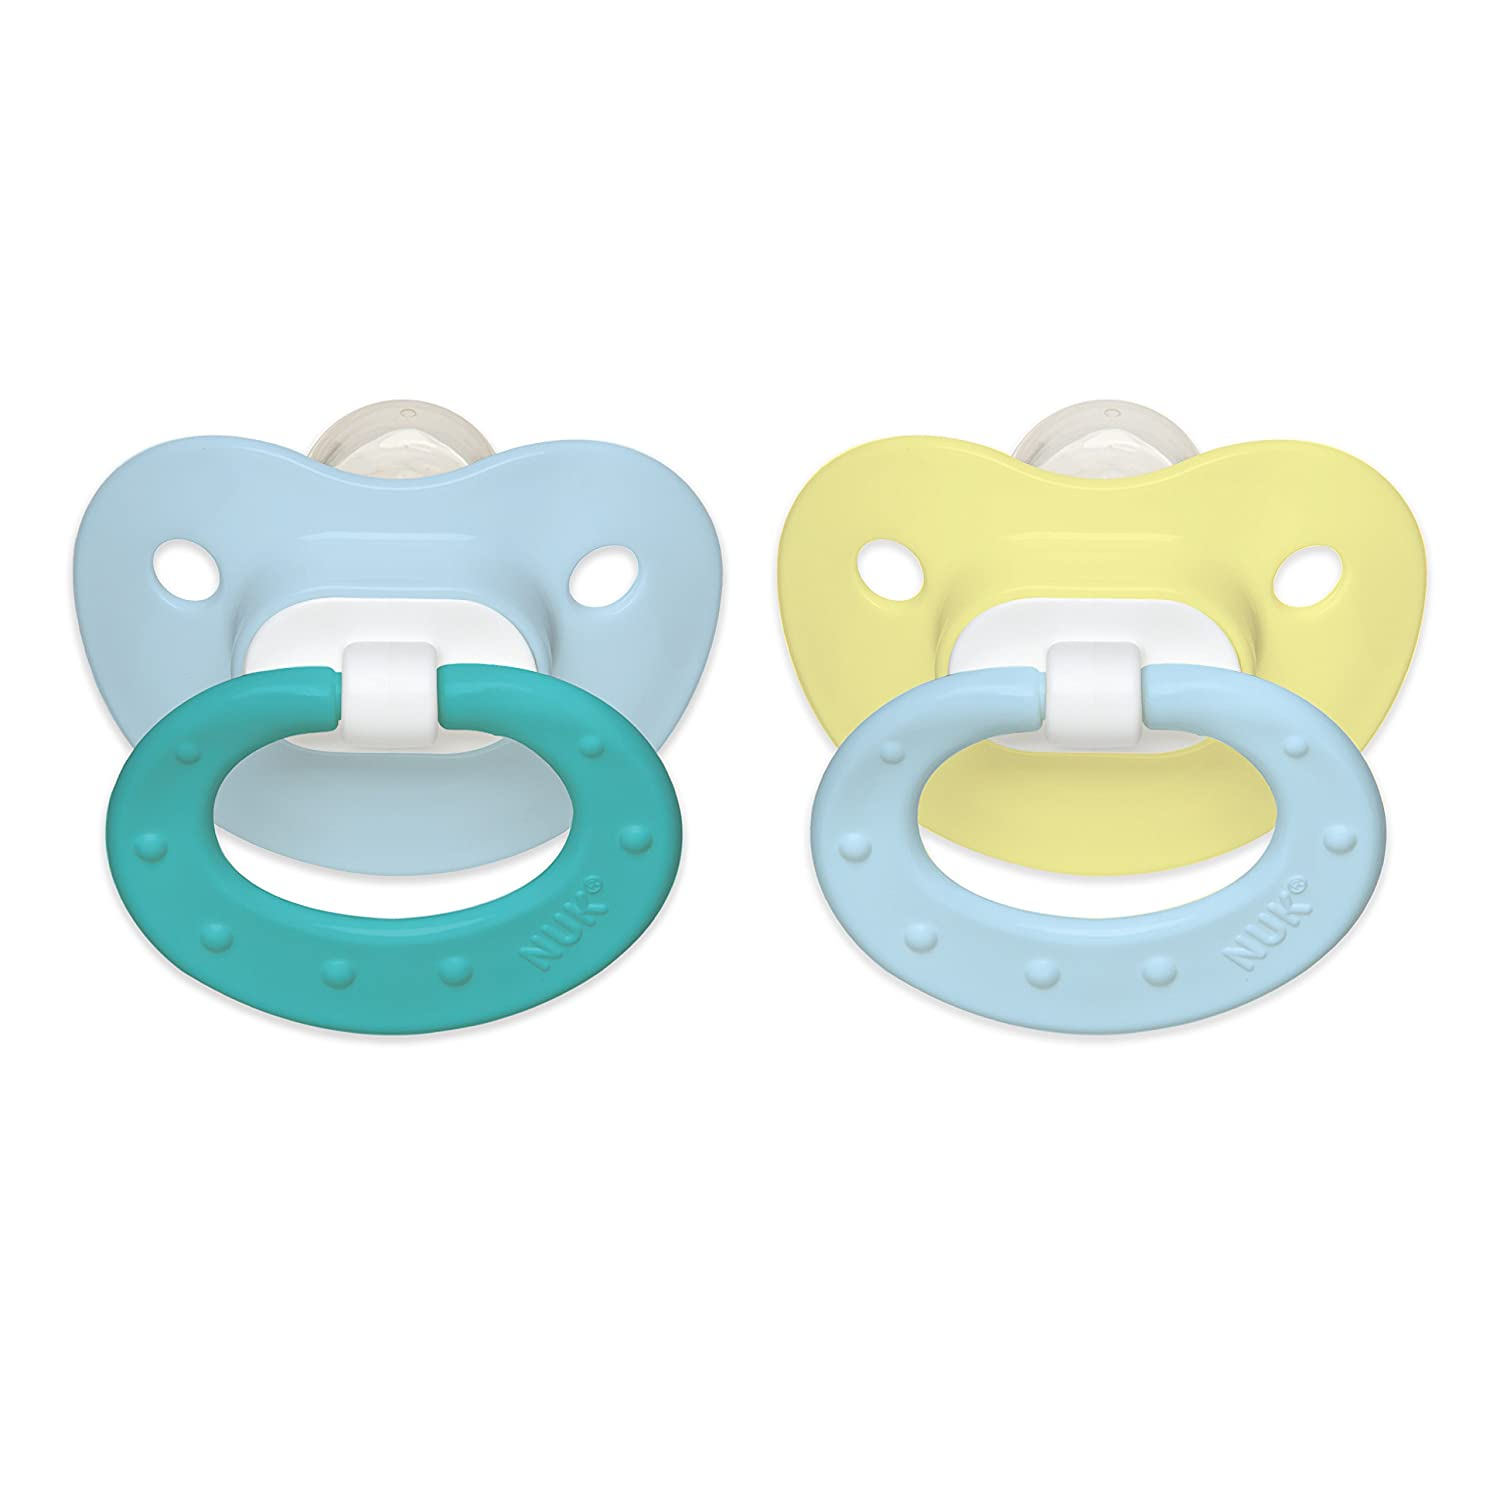 NUK Classic Silicone BPA Free Fashion Pacifier, Size 1, 2-Pack, Colors May Vary 62642